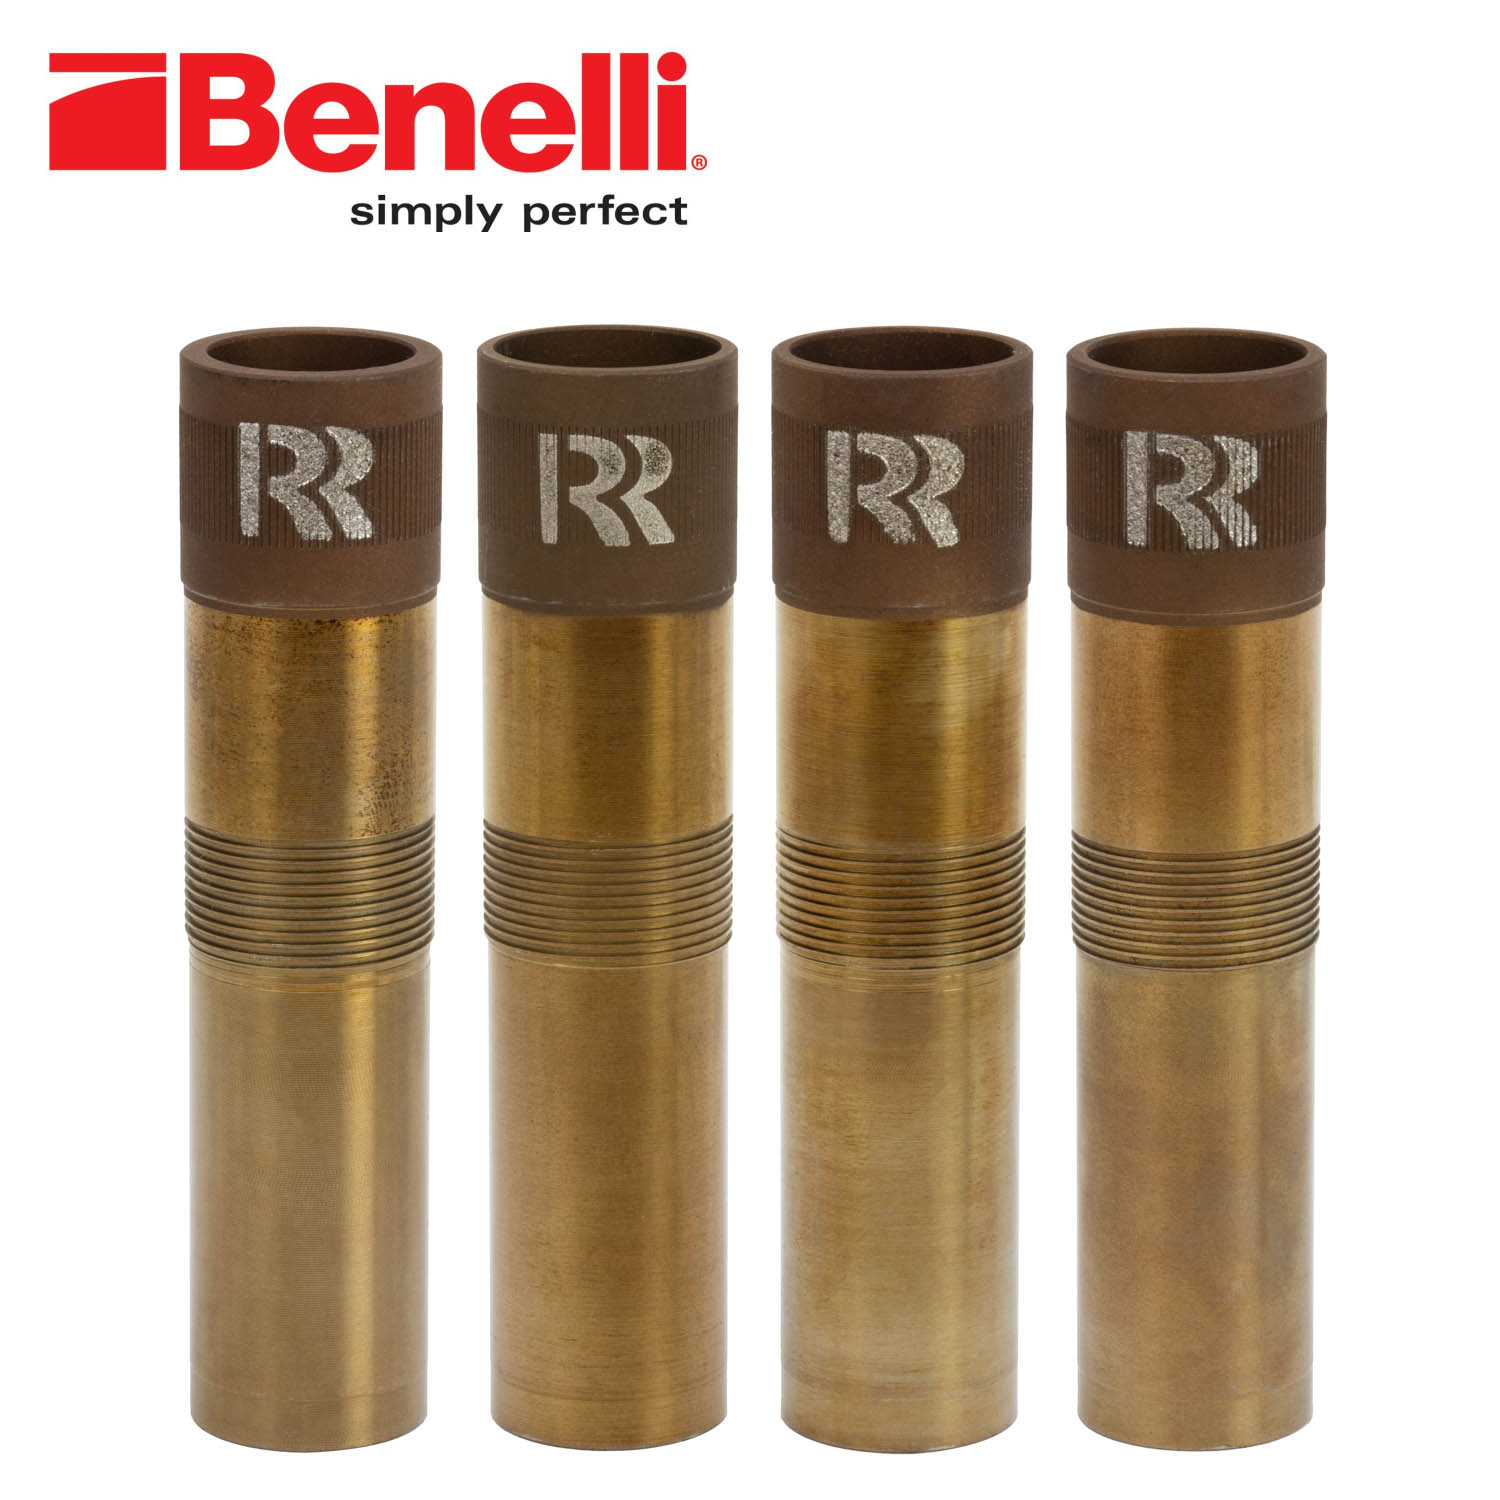 Benelli 12 Gauge Performance Shop Extended Chokes By Rob Roberts: Midwest  Gun Works